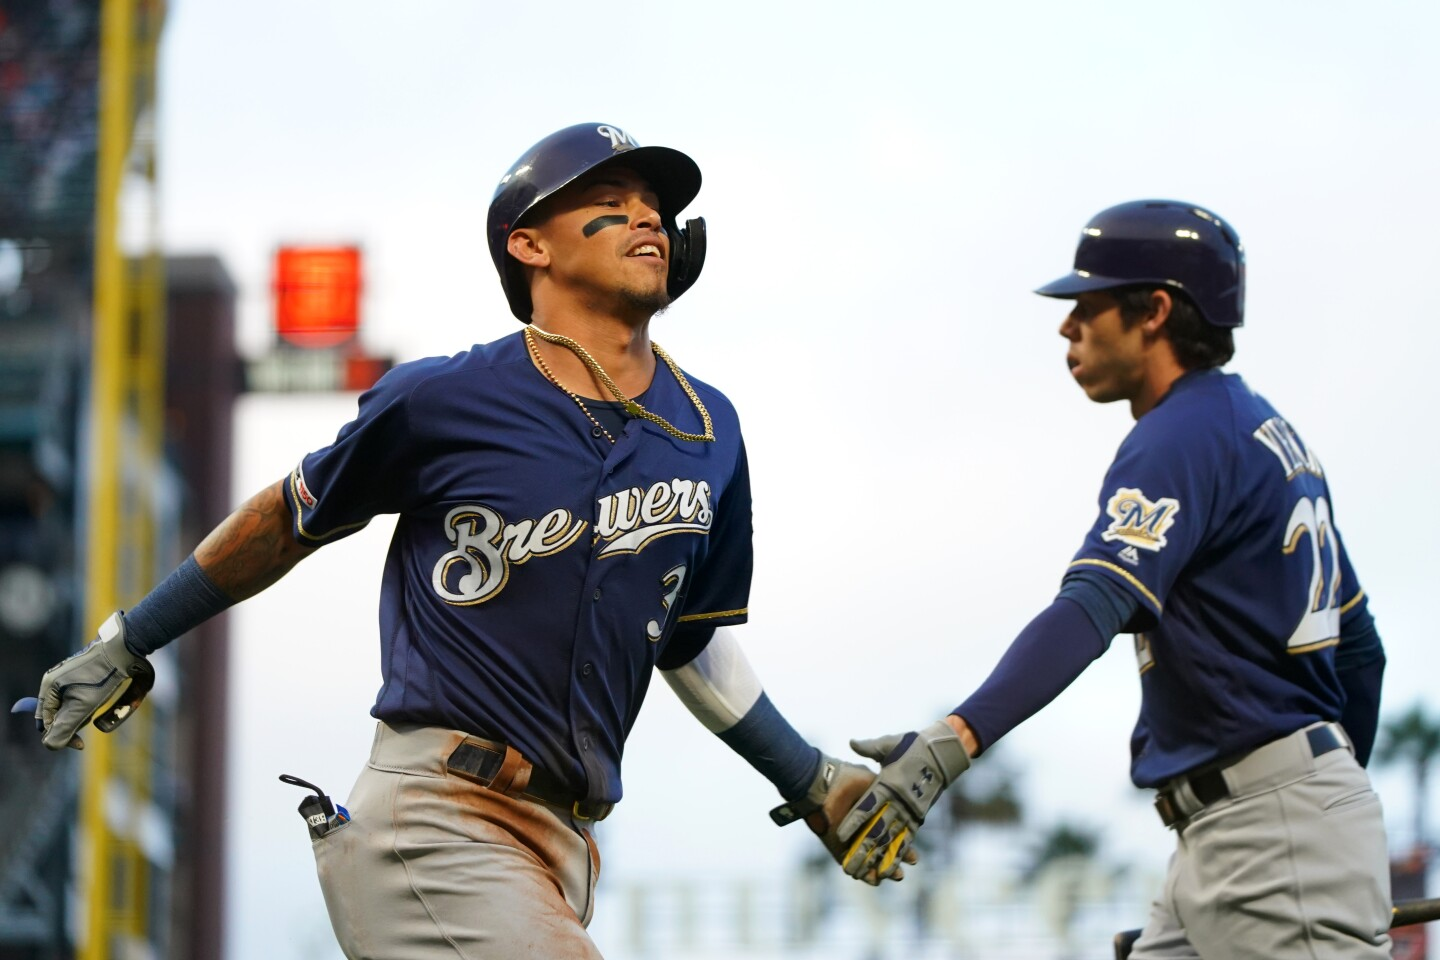 SAN FRANCISCO, CALIFORNIA - JUNE 14: Orlando Arcia #3 of the Milwaukee Brewers celebrates with Christian Yelich #22 after scoring on a past ball during the third inning against the San Francisco Giants at Oracle Park on June 14, 2019 in San Francisco, California. (Photo by Daniel Shirey/Getty Images) ** OUTS - ELSENT, FPG, CM - OUTS * NM, PH, VA if sourced by CT, LA or MoD **